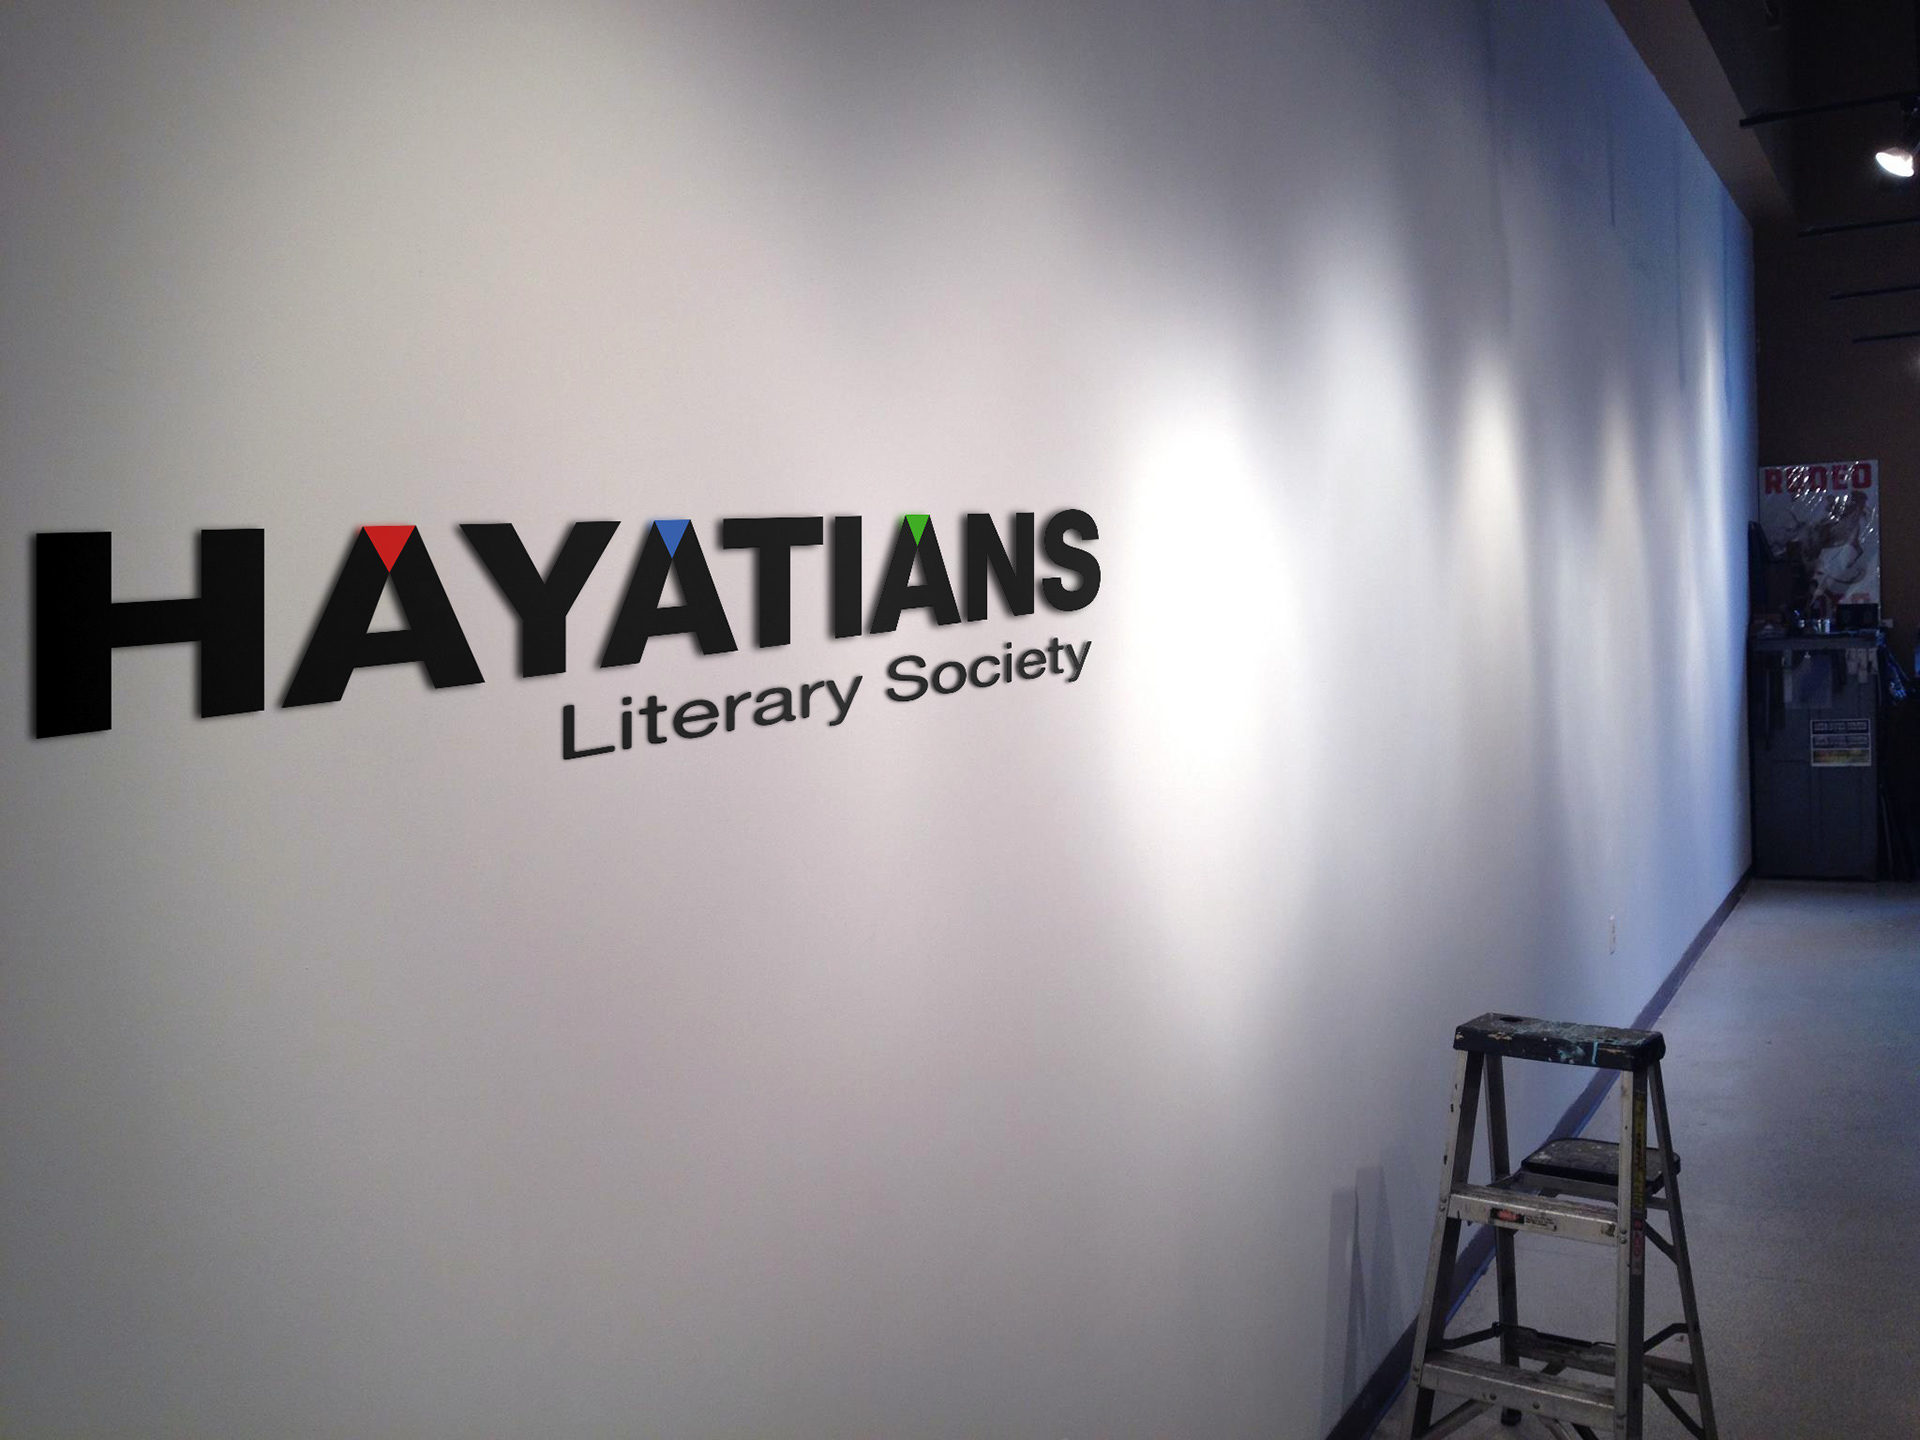 Hayatians Literary Society (University of Gujrat)